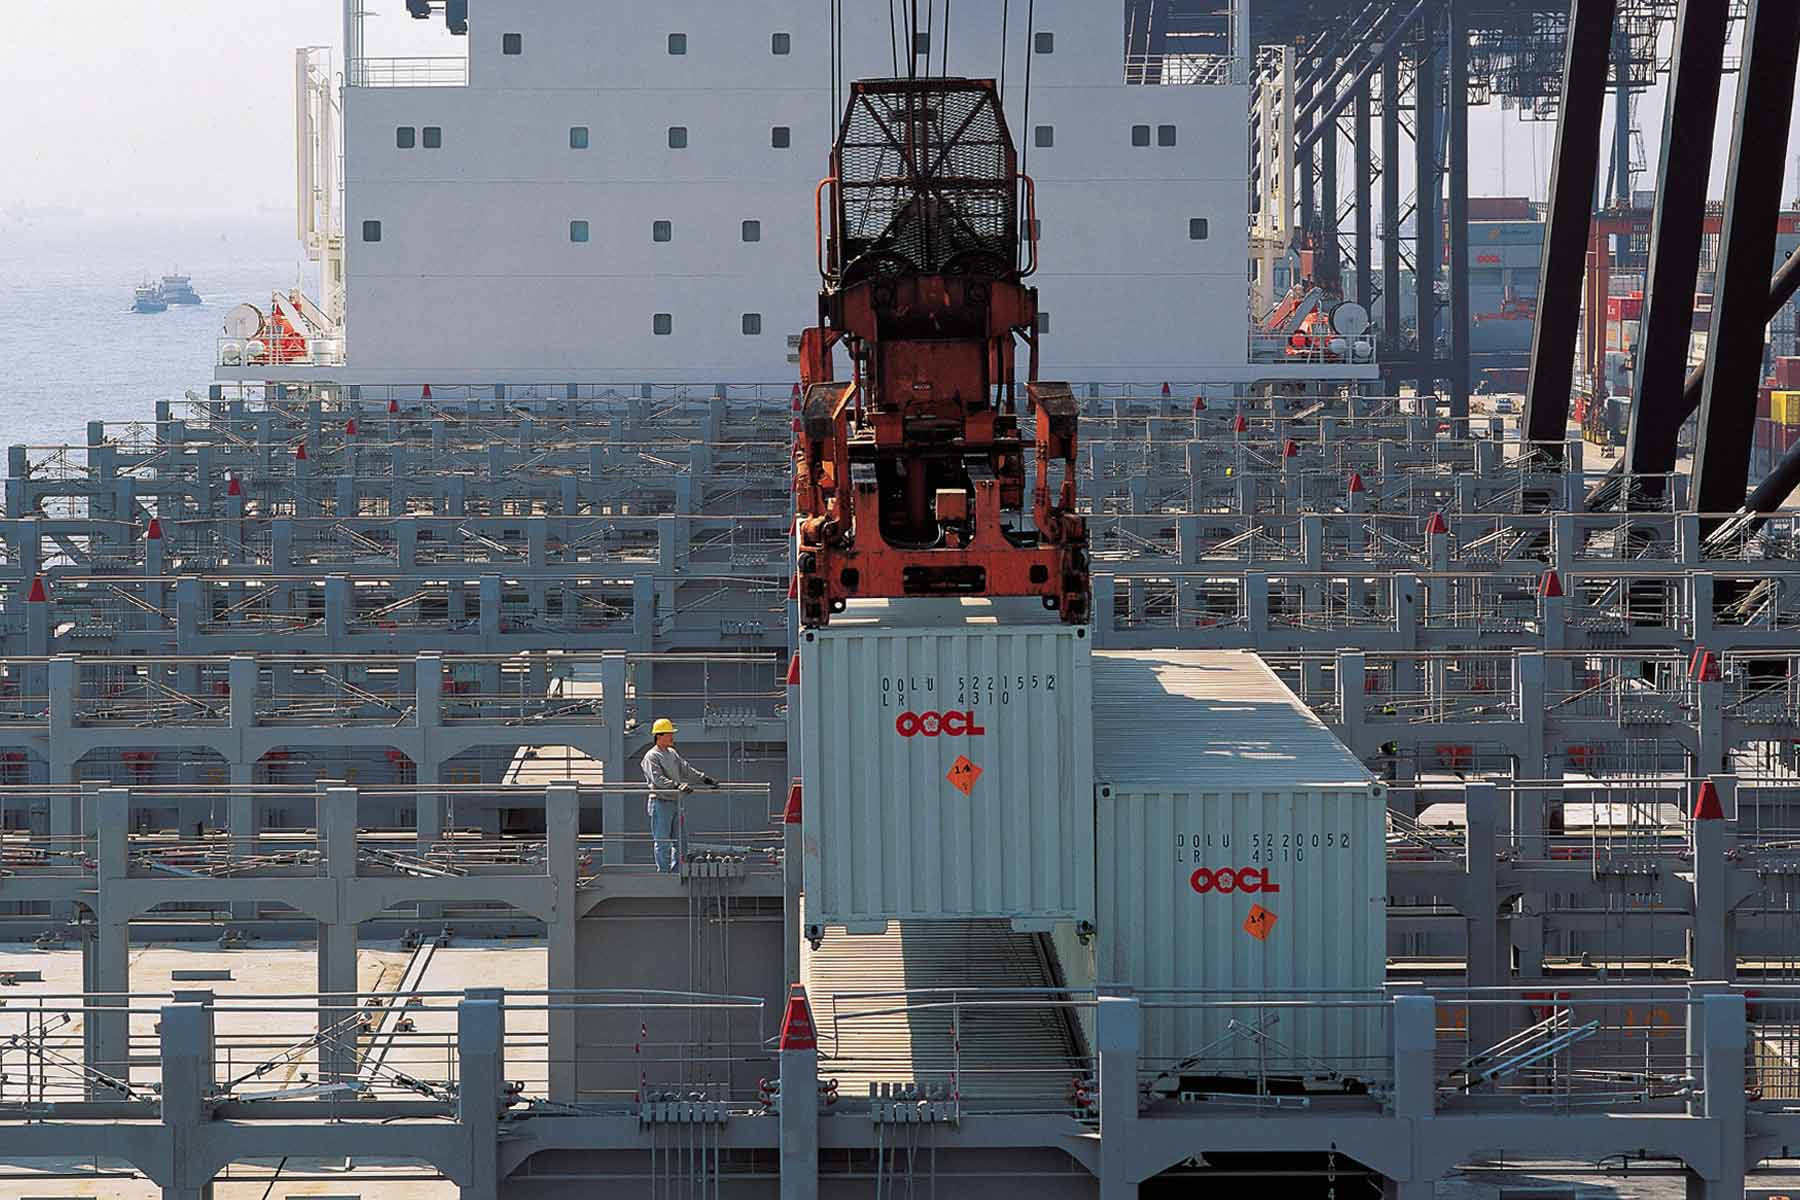 OOCL reports increased revenues by 51% in Q4 2020 1